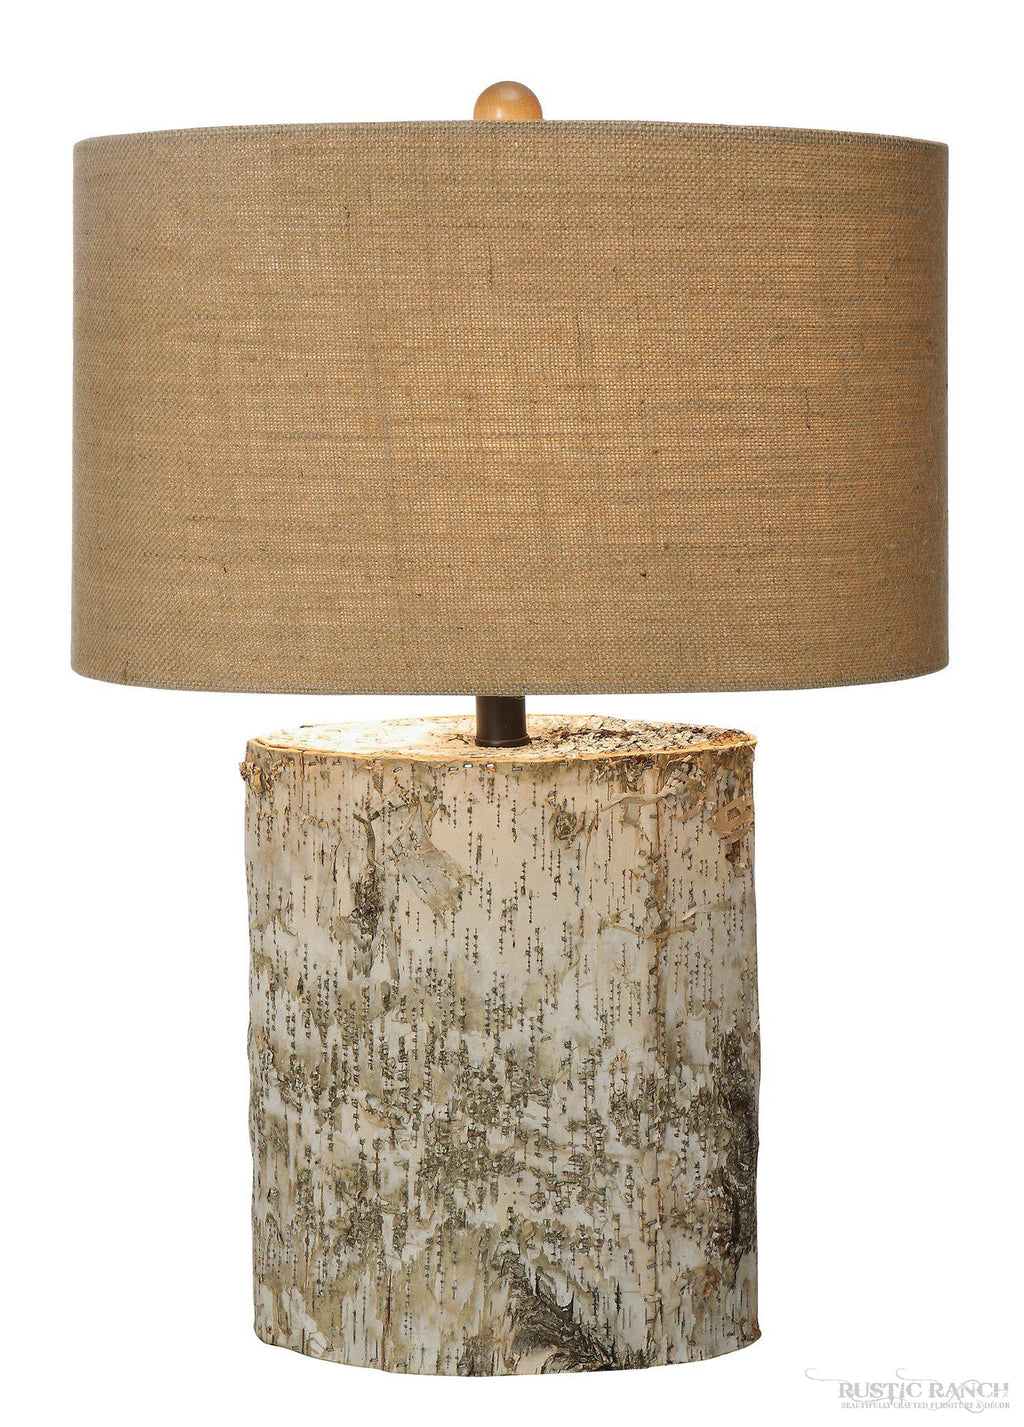 BIRCHWOOD TABLE LAMP-Rustic Ranch